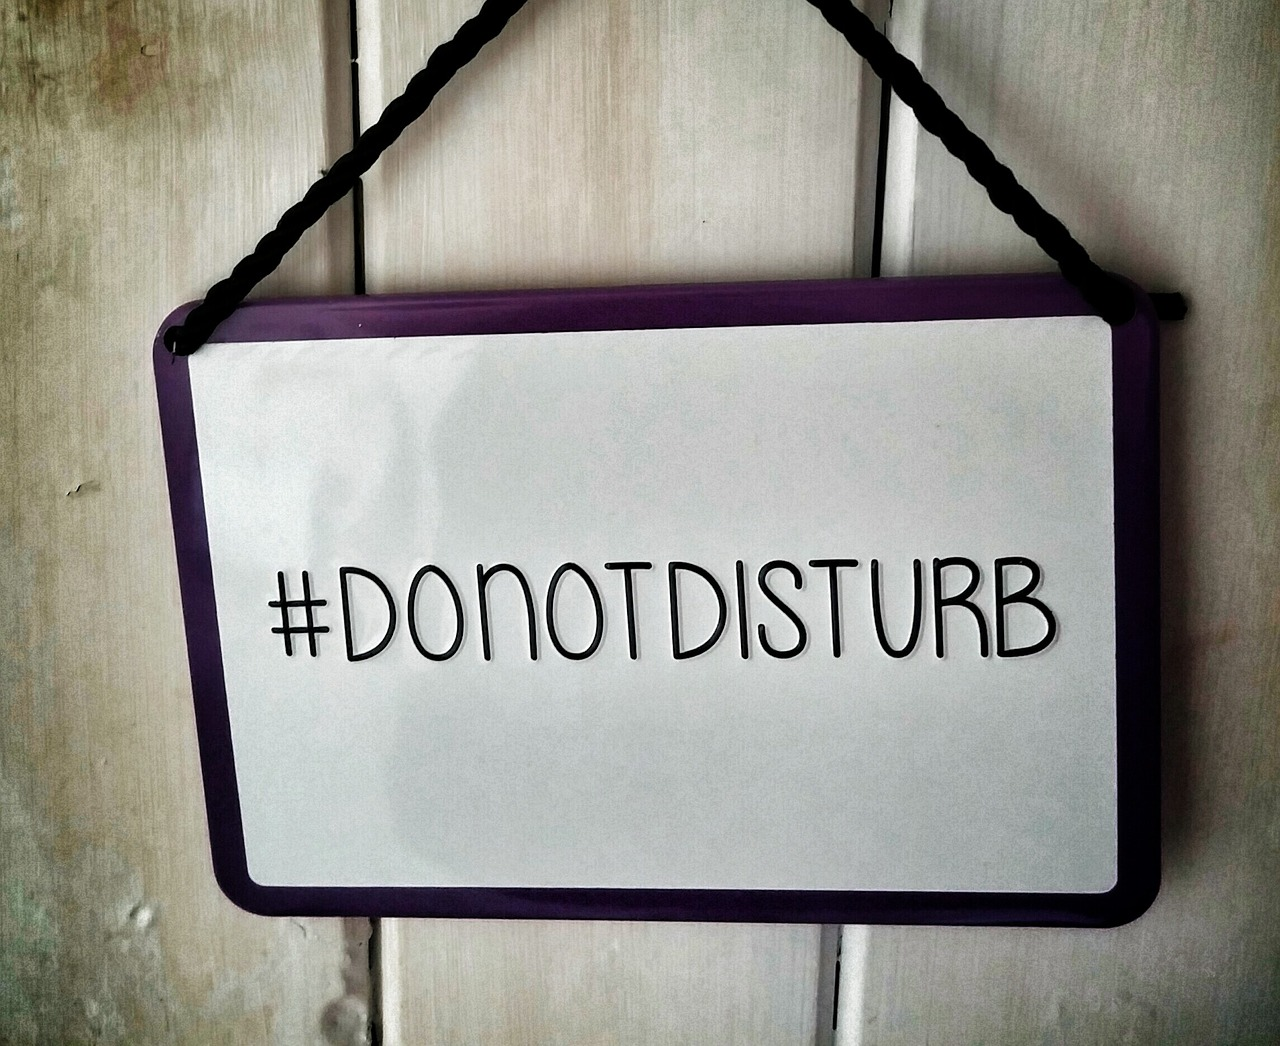 A white sign with a black border against a wooden wall. The sign reads in black letters #DONOTDISTURB